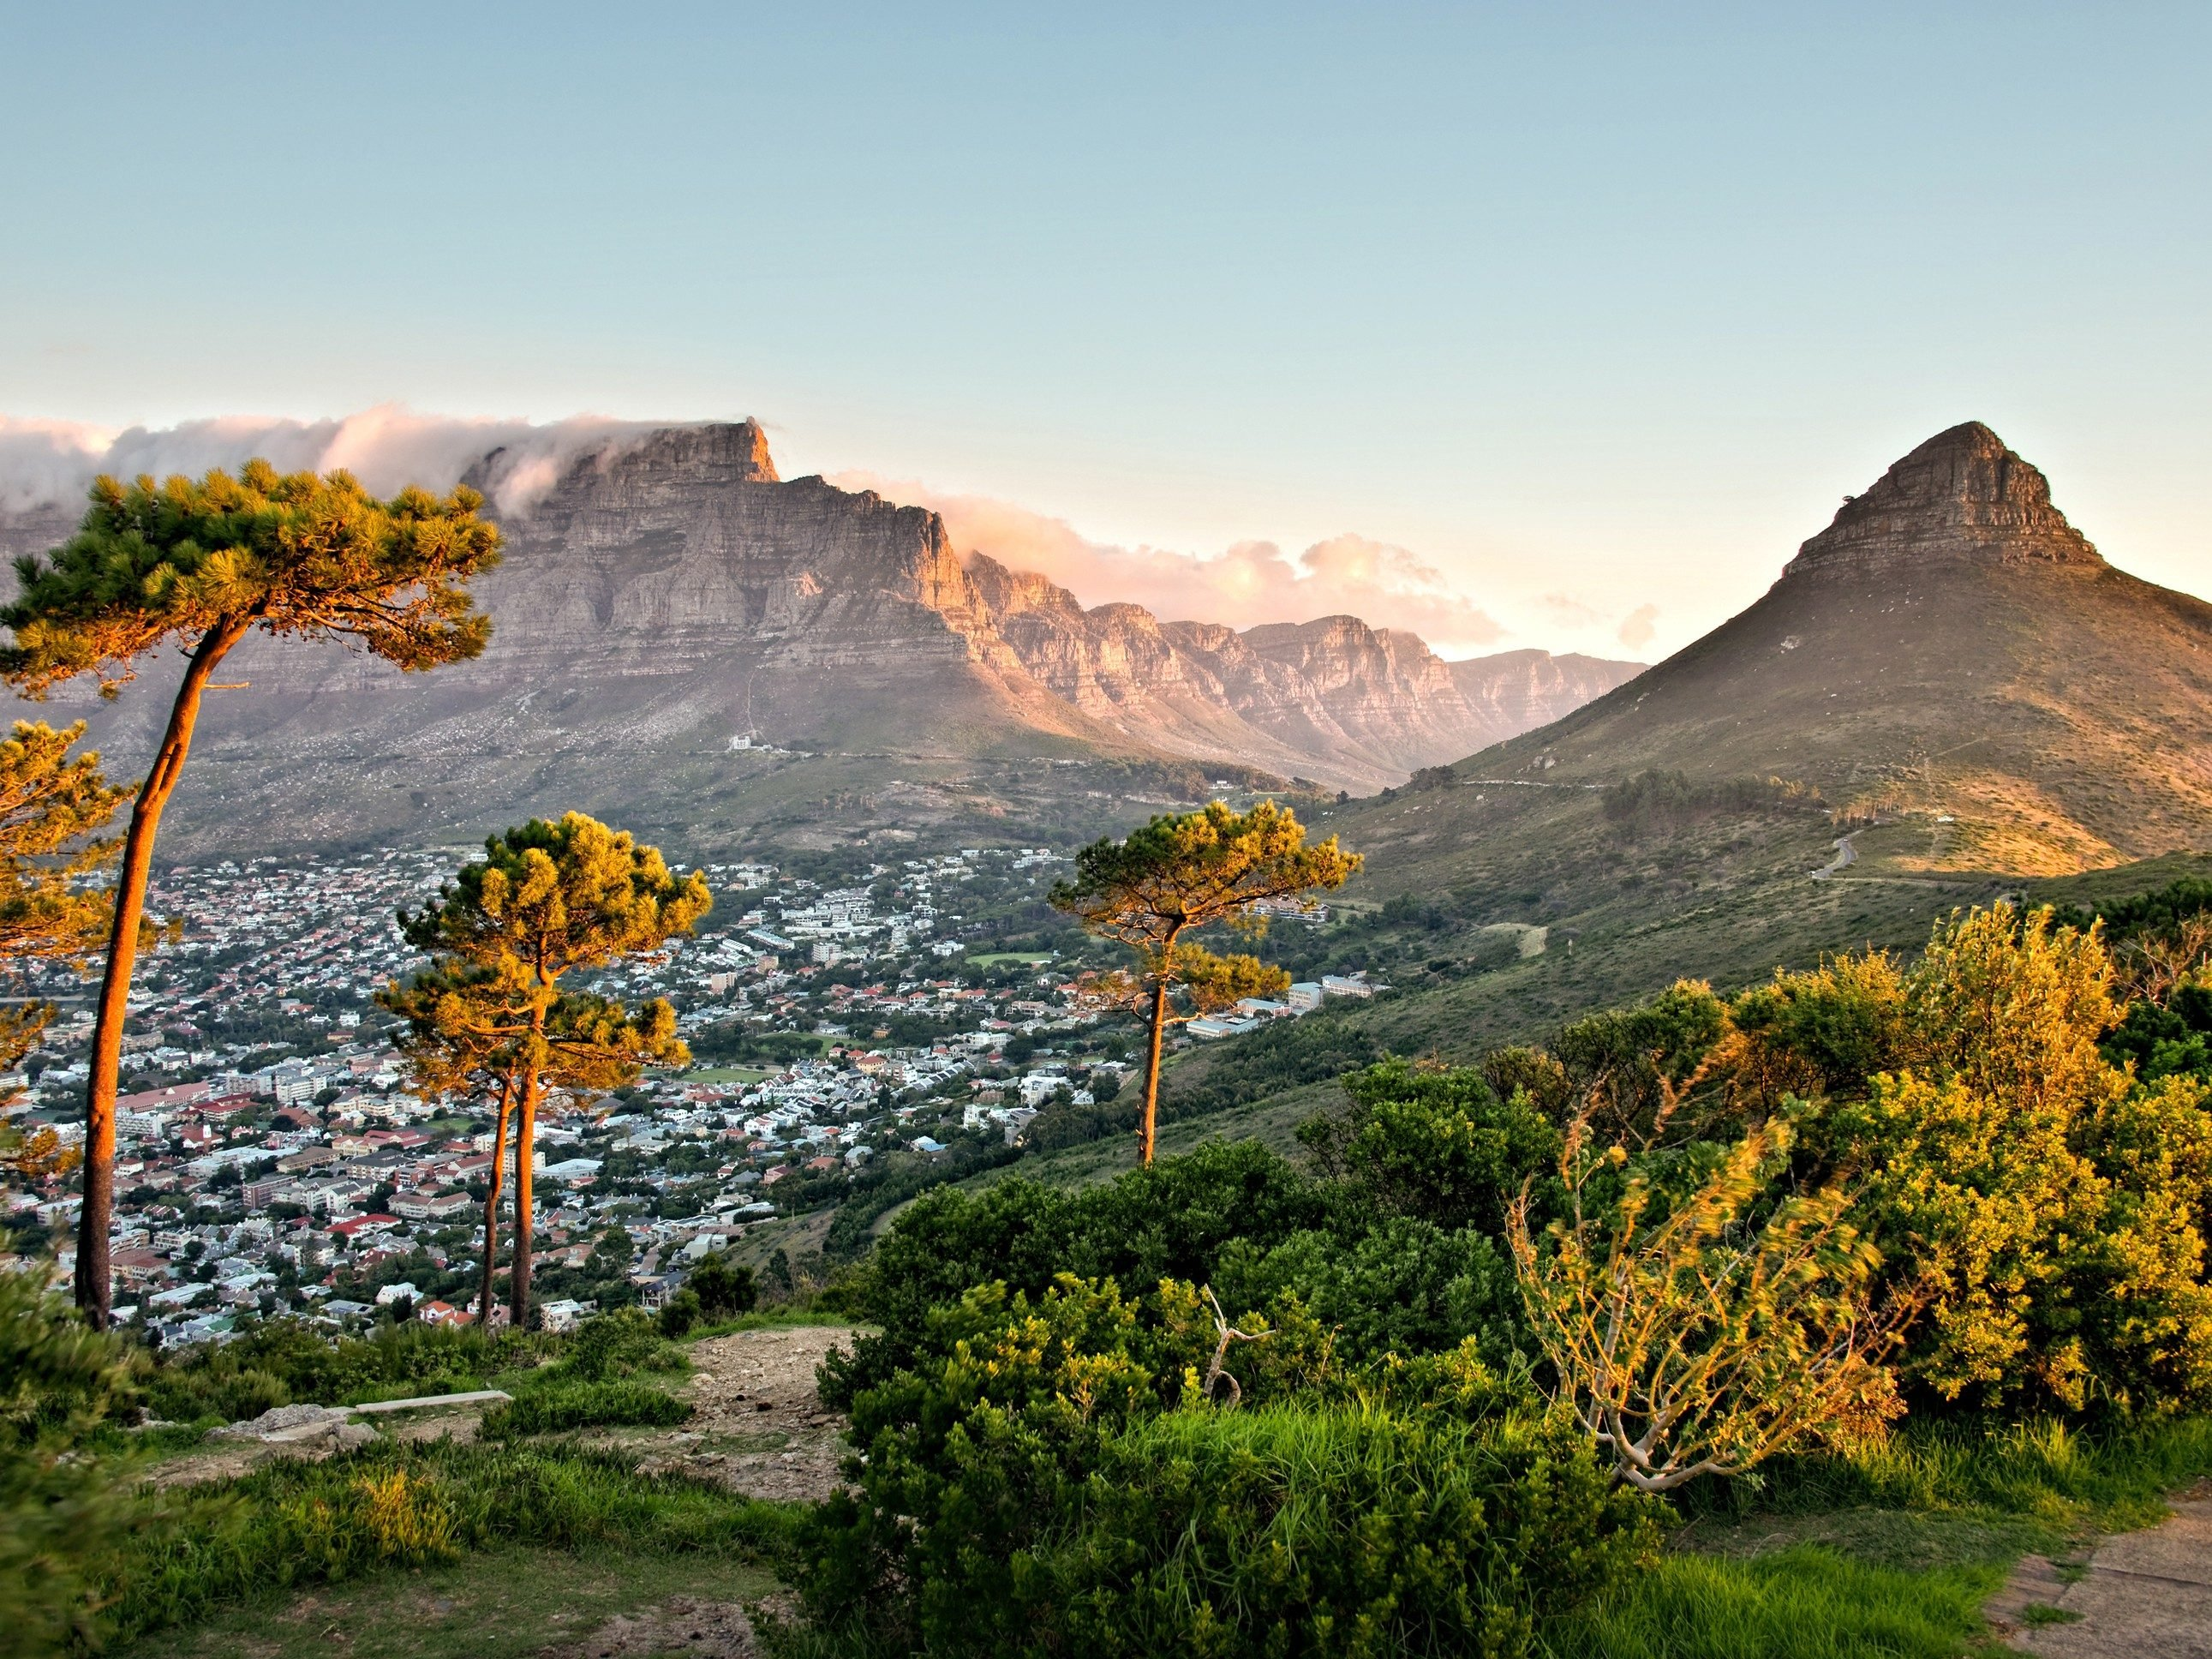 5. South Africa